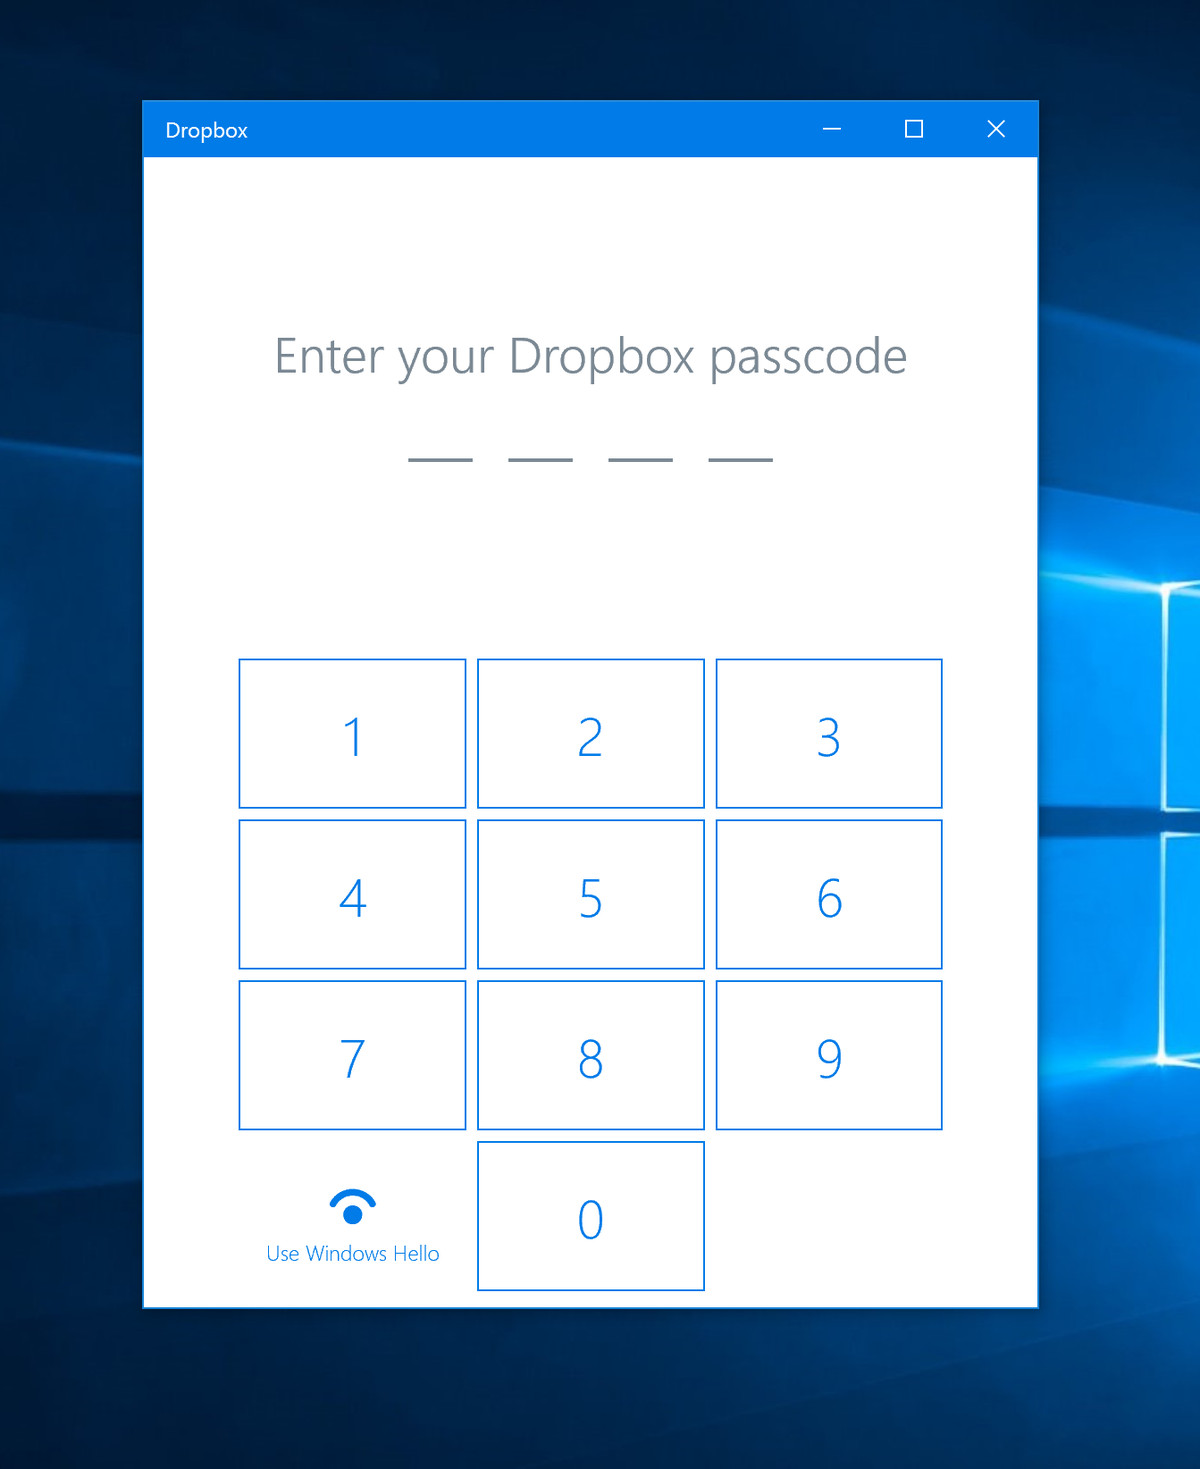 Dropbox's new Windows 10 app lets you secure your files with your